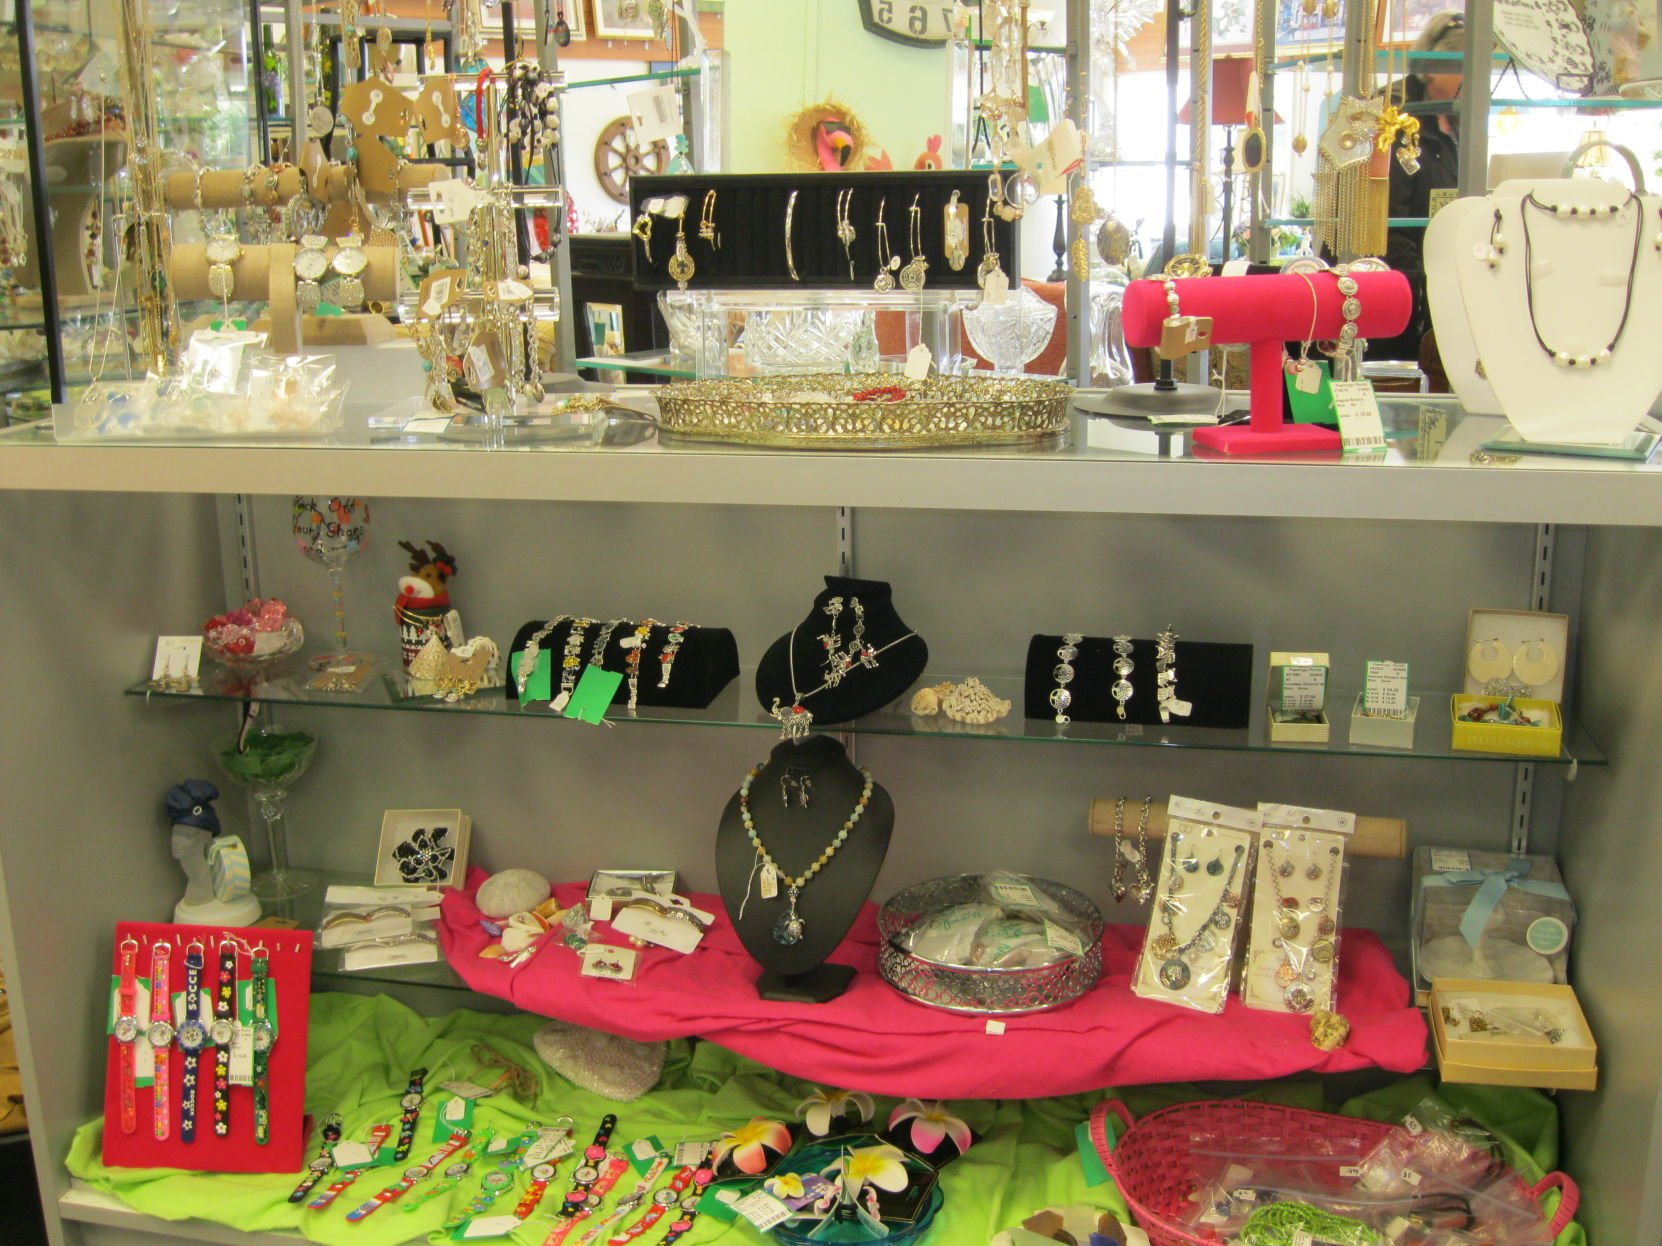 Merveilleux Find Furniture, Jewelry, Lots Of Fun At Flamingo Porch